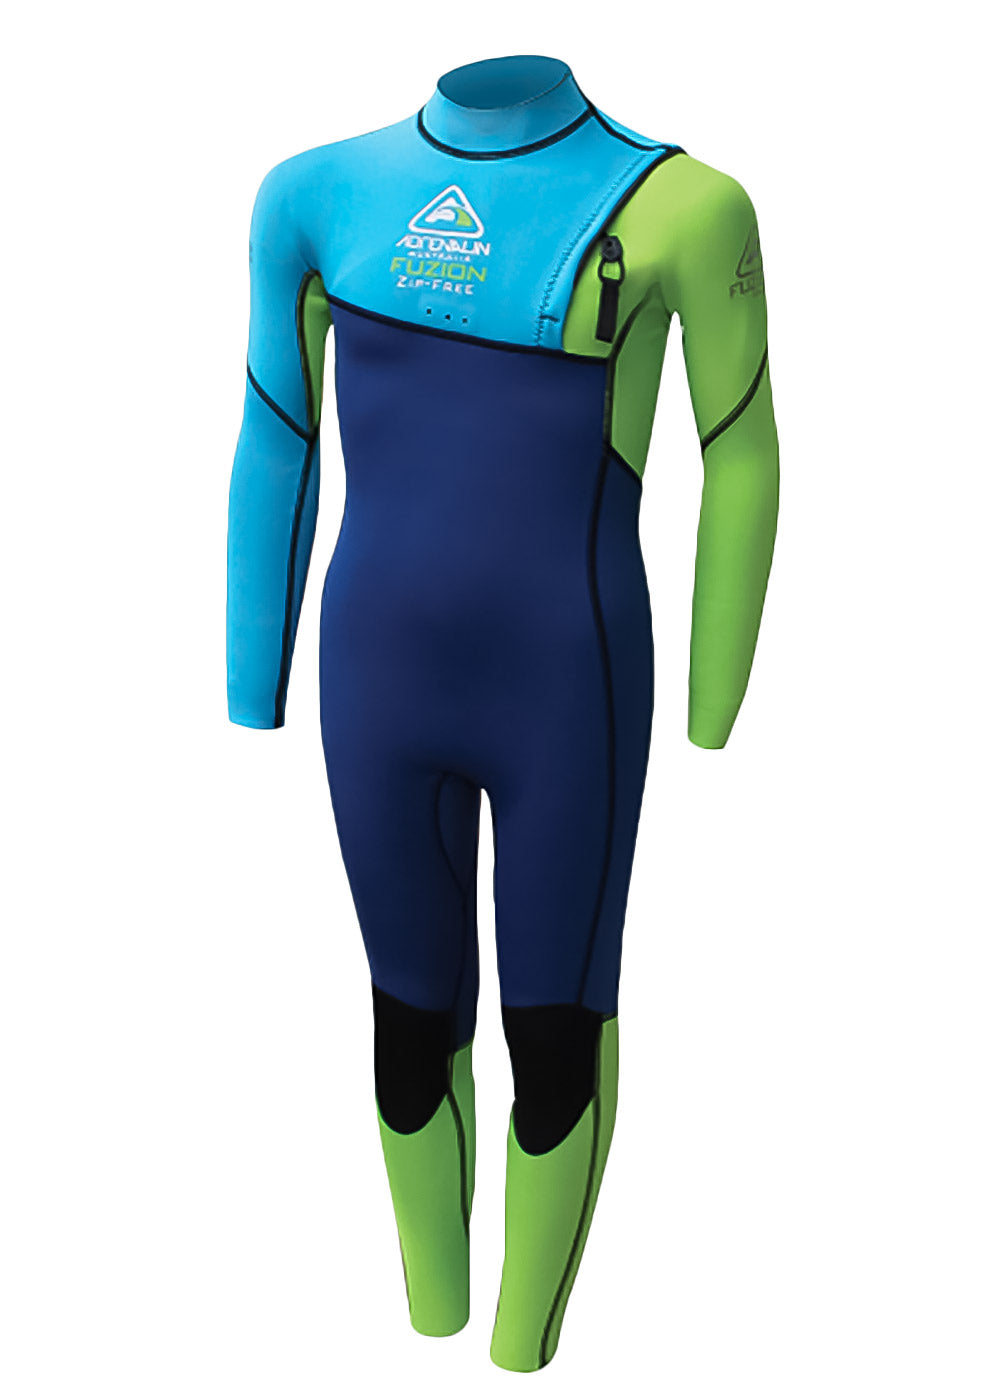 Adrenalin Kids Fuzion 2mm Zipperless Steamer - Buy online with Wetsuit Warehouse